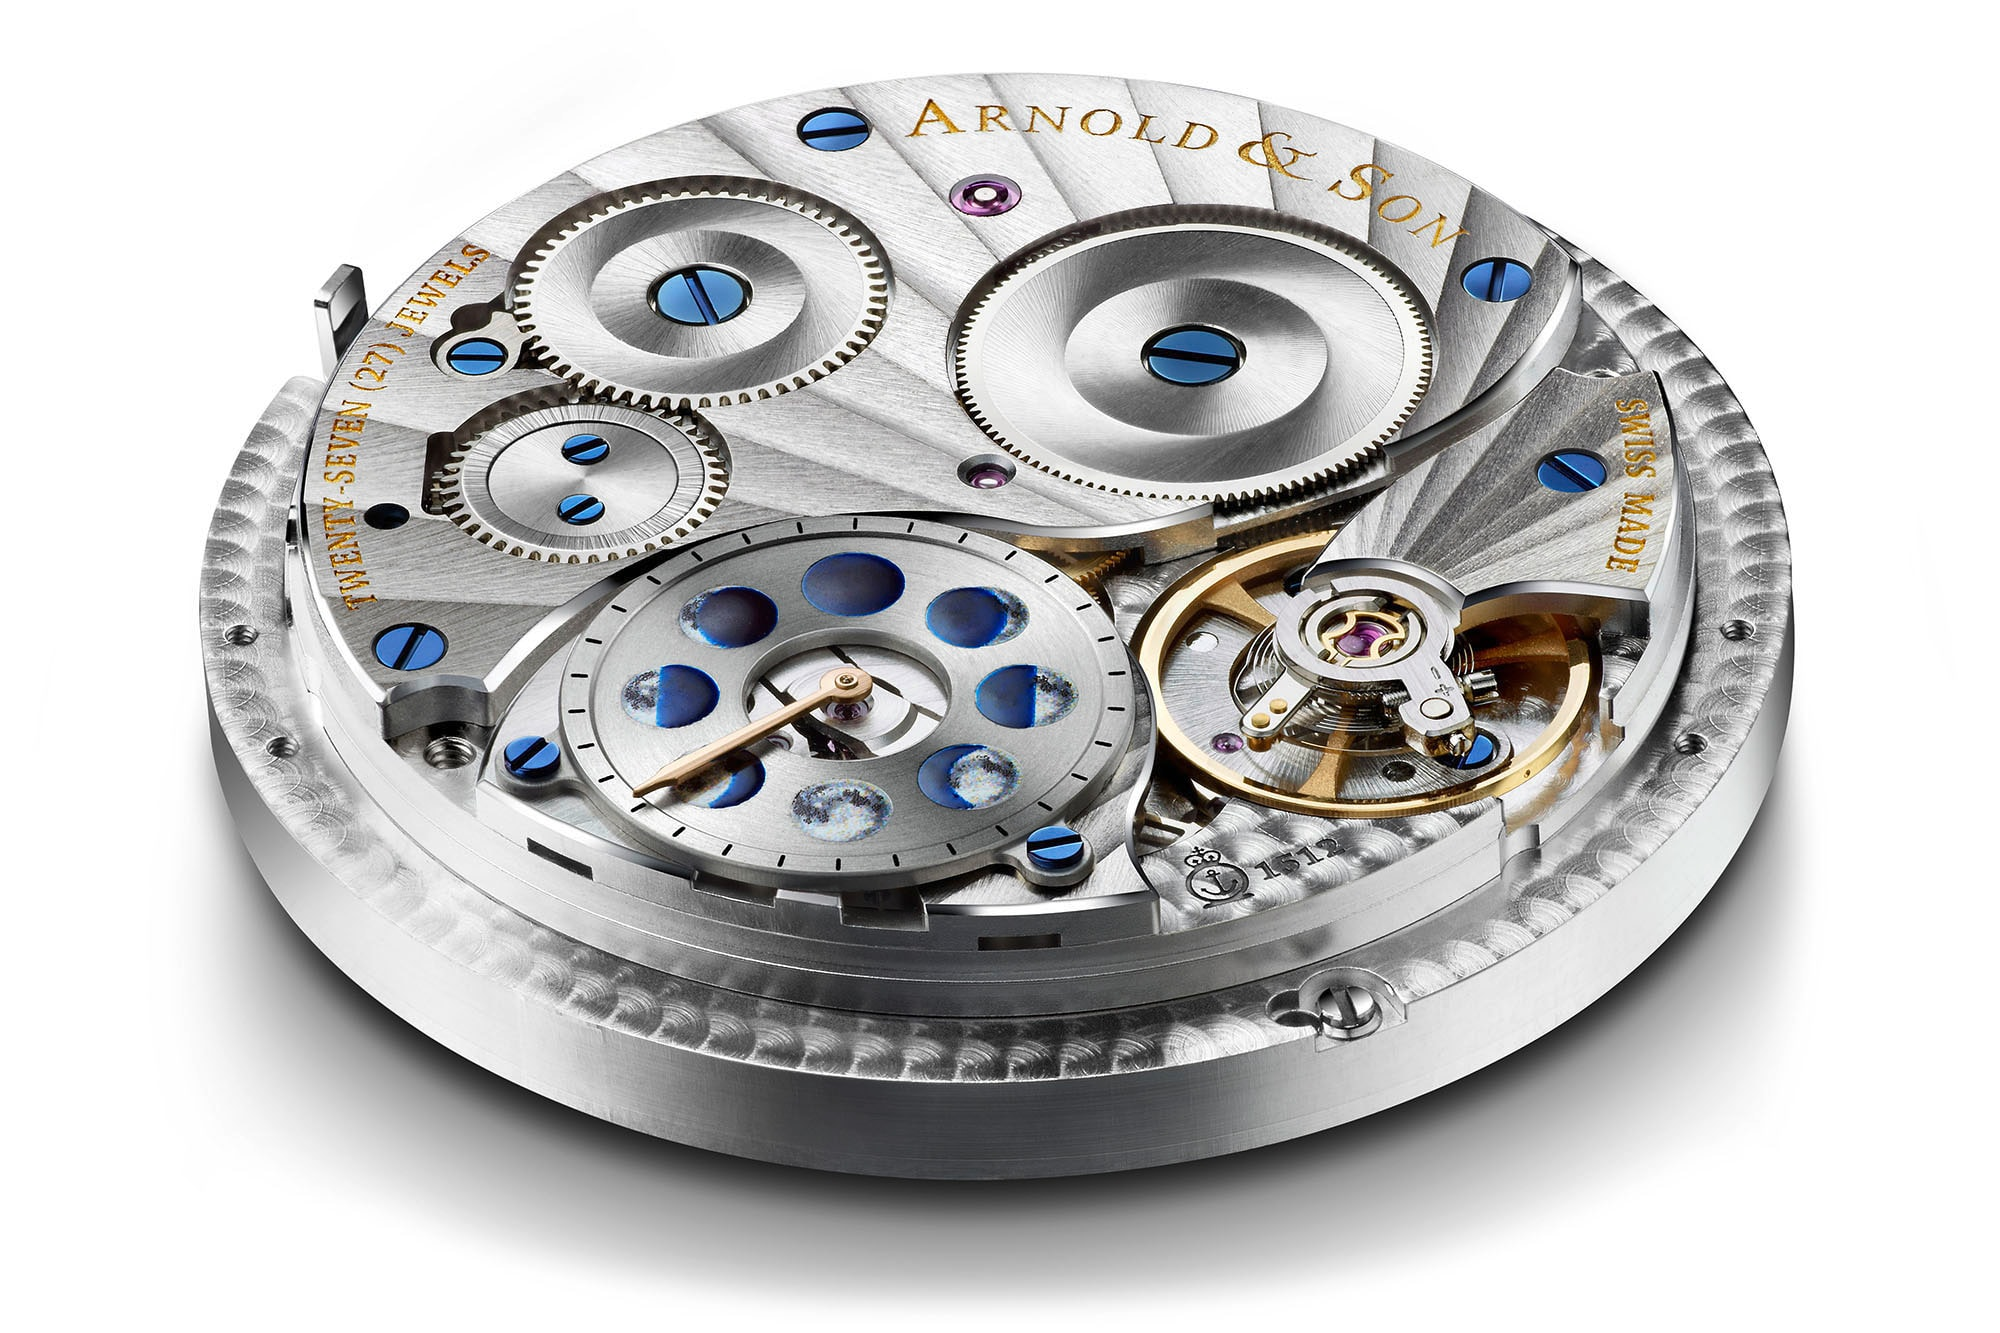 The Arnold & Son HM Double Hemisphere Perpetual Moon movement  Introducing: The Arnold & Son HM Double Hemisphere Perpetual Moon, With A Very Large High Precision Moon Phase Display Introducing: The Arnold & Son HM Double Hemisphere Perpetual Moon, With A Very Large High Precision Moon Phase Display a1